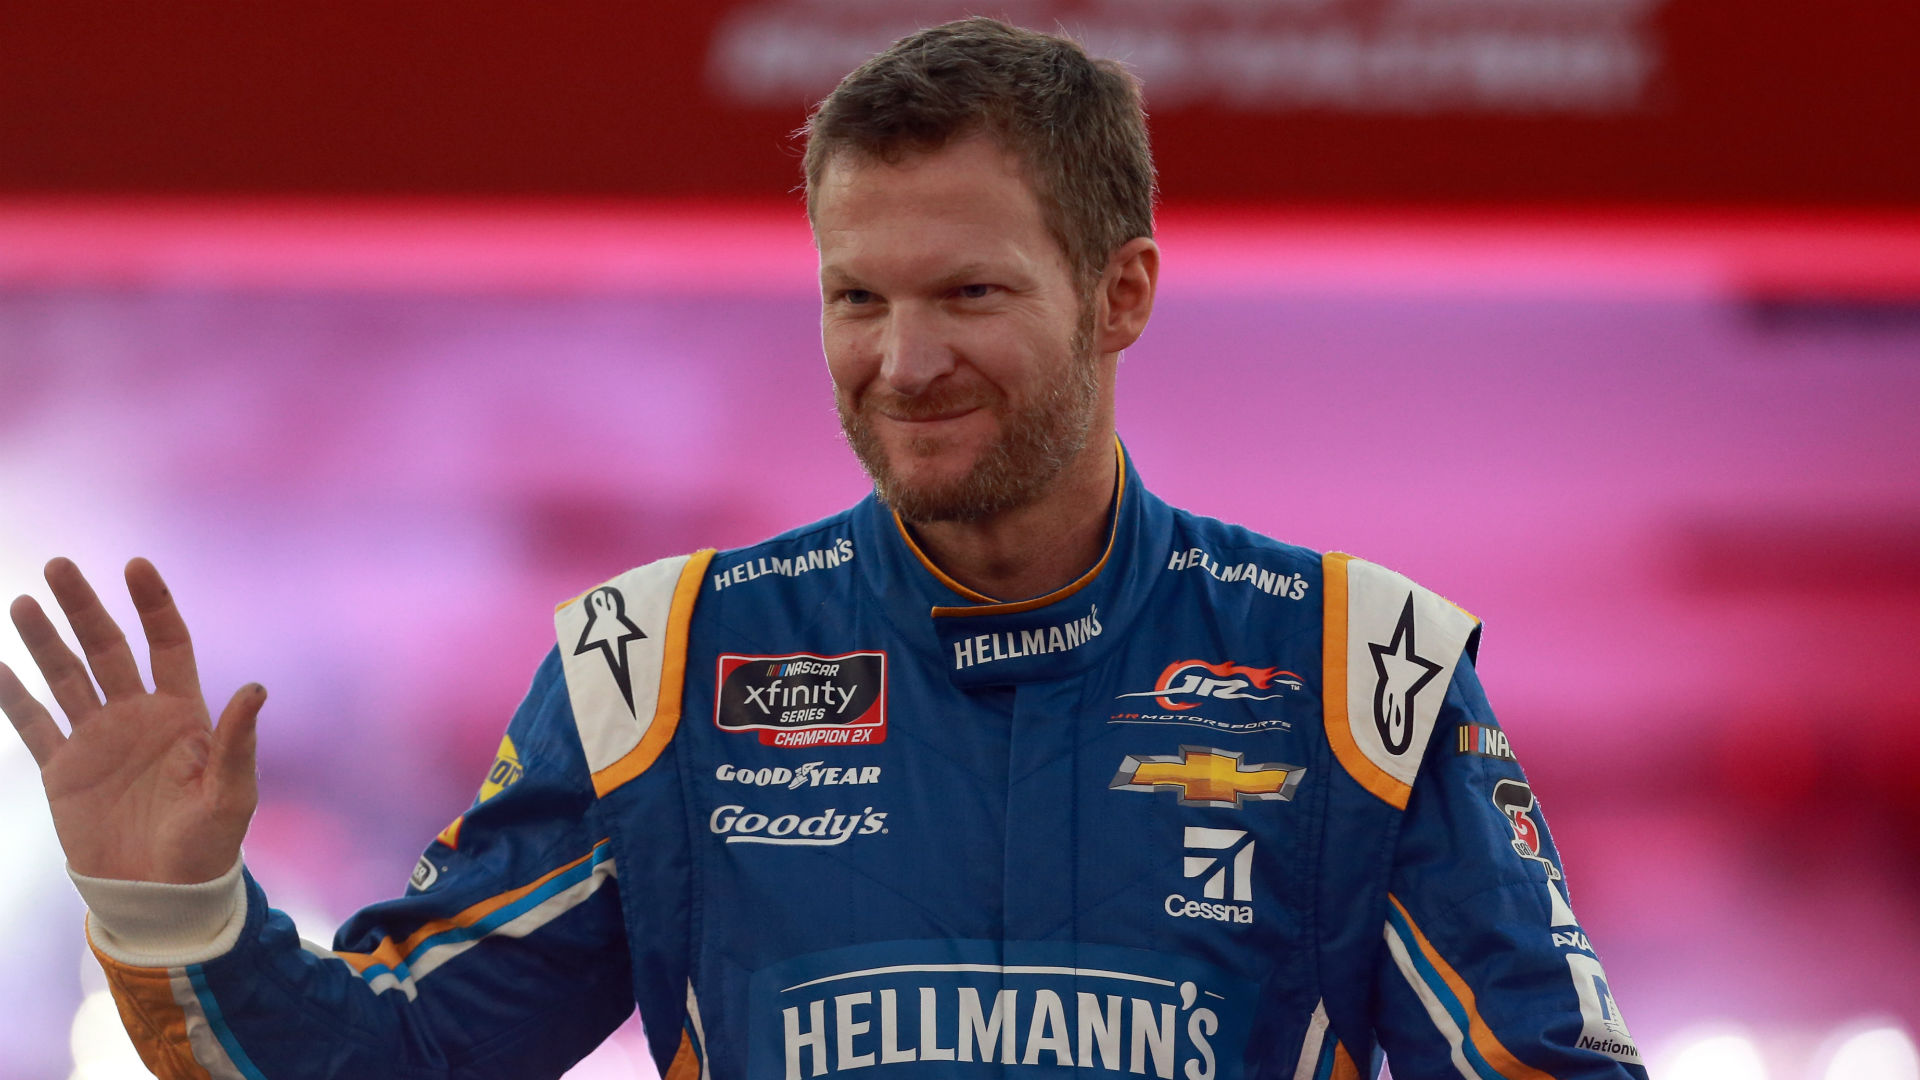 Dale Earnhardt Jr. to pay tribute to father in special way at Darlington Raceway